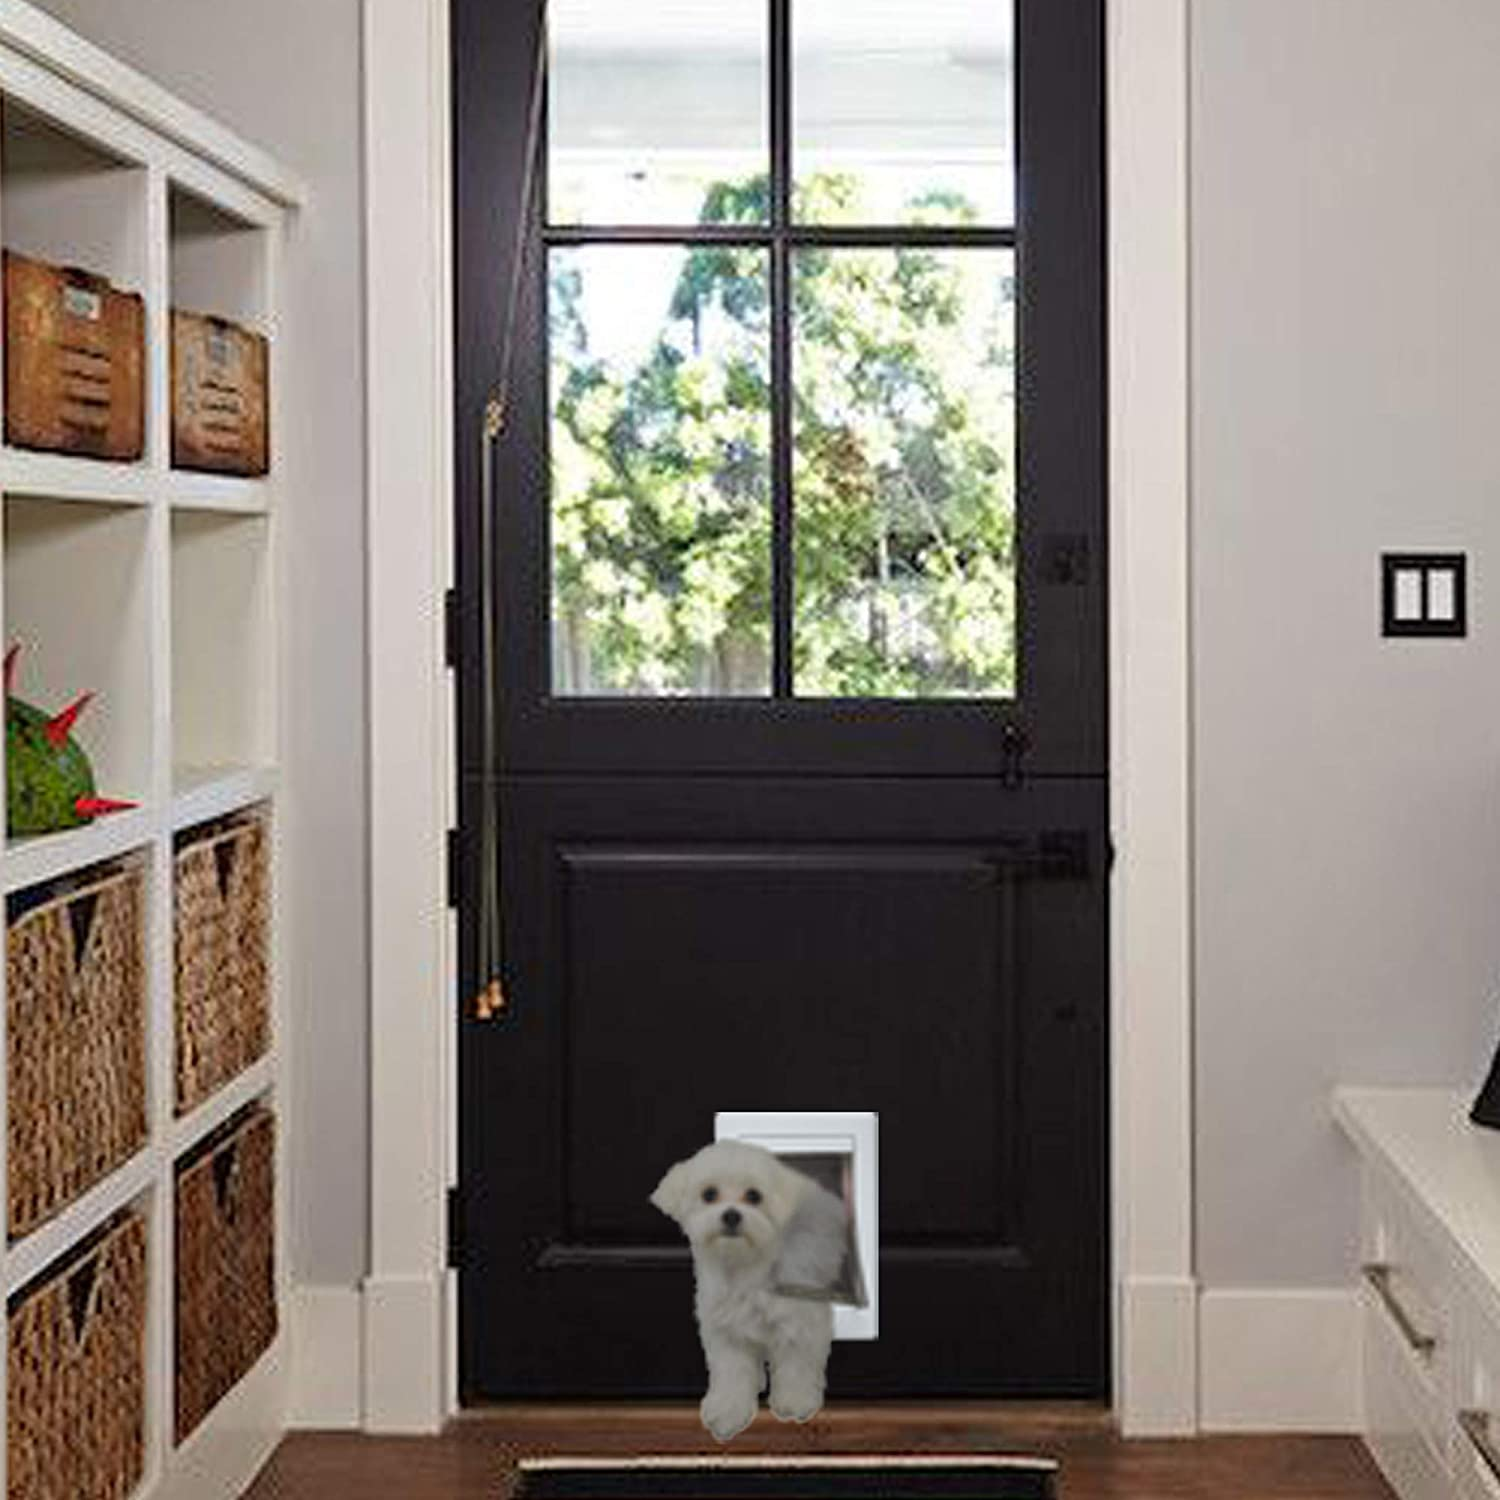 "Ideal Pet Products Designer Series Plastic Pet Door with Telescoping Frame, Small, 5"" x 7"" Flap Size : Pet Supplies"